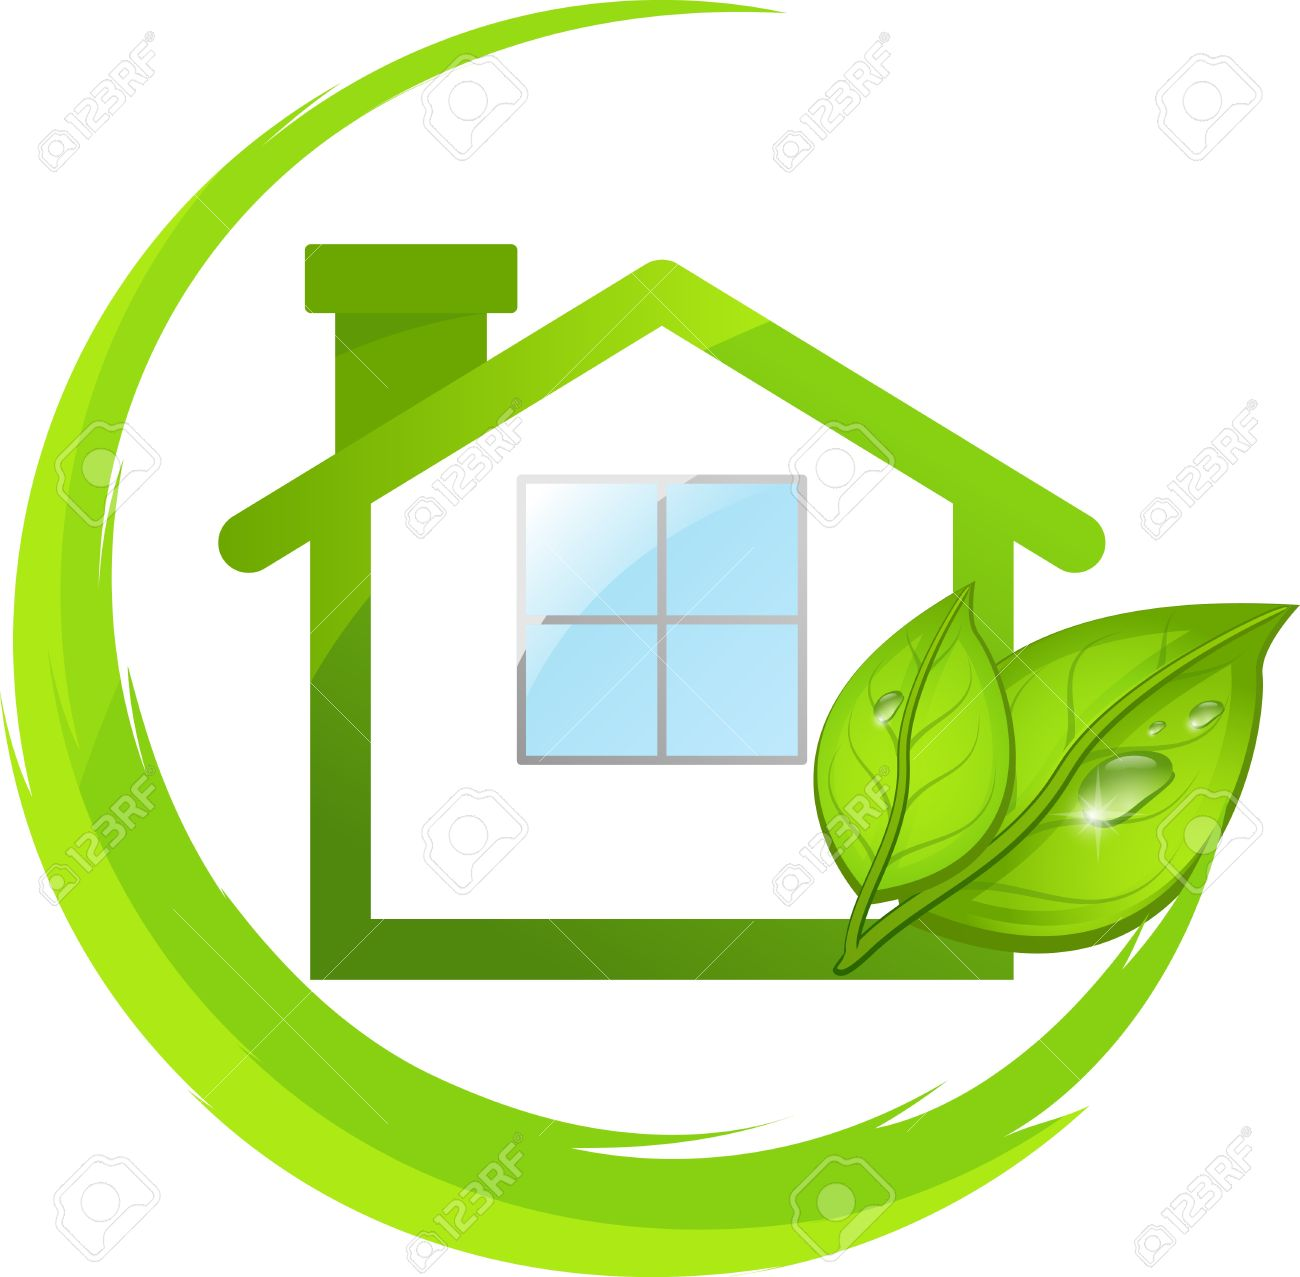 Logo of simple green eco house with leafs - 18865388